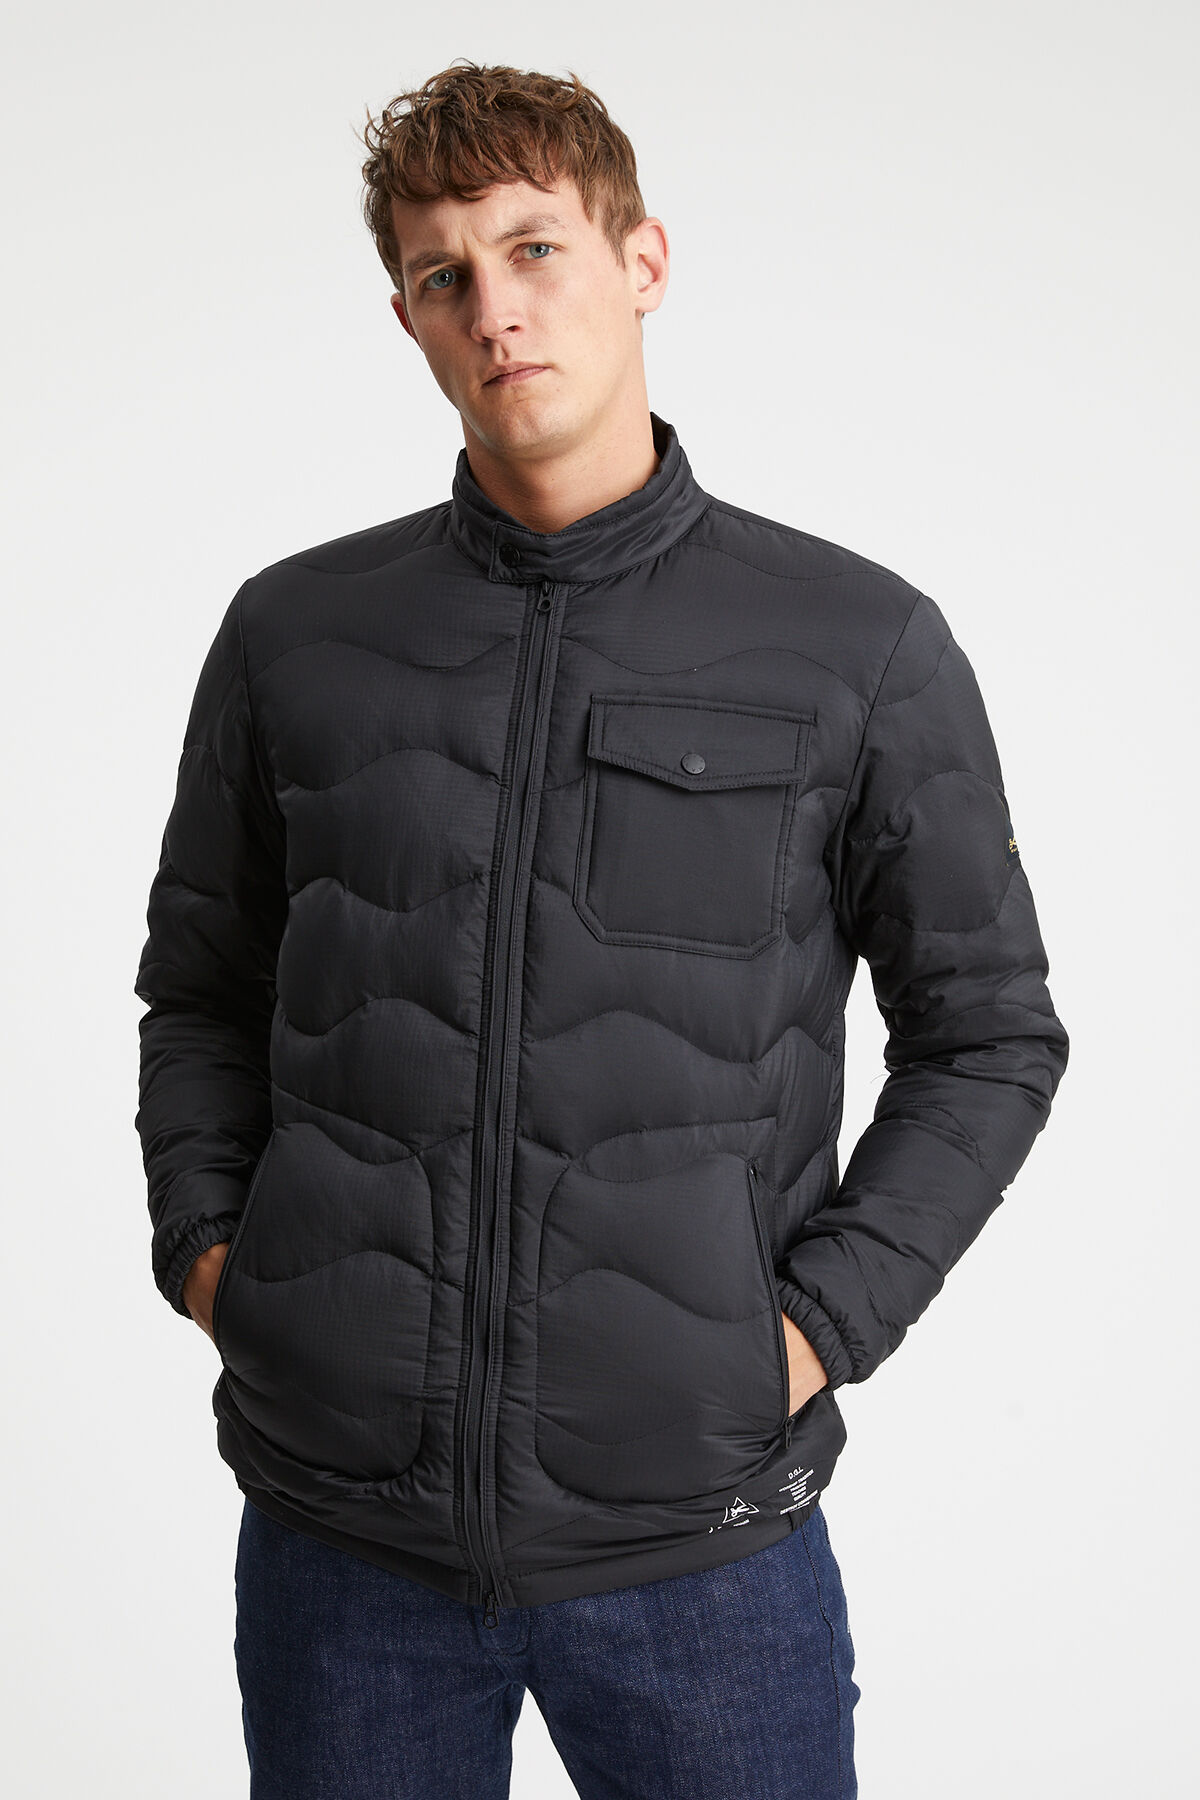 ALBION FLY WEIGHT DOWN Sustainable Down Lining - Regular Fit